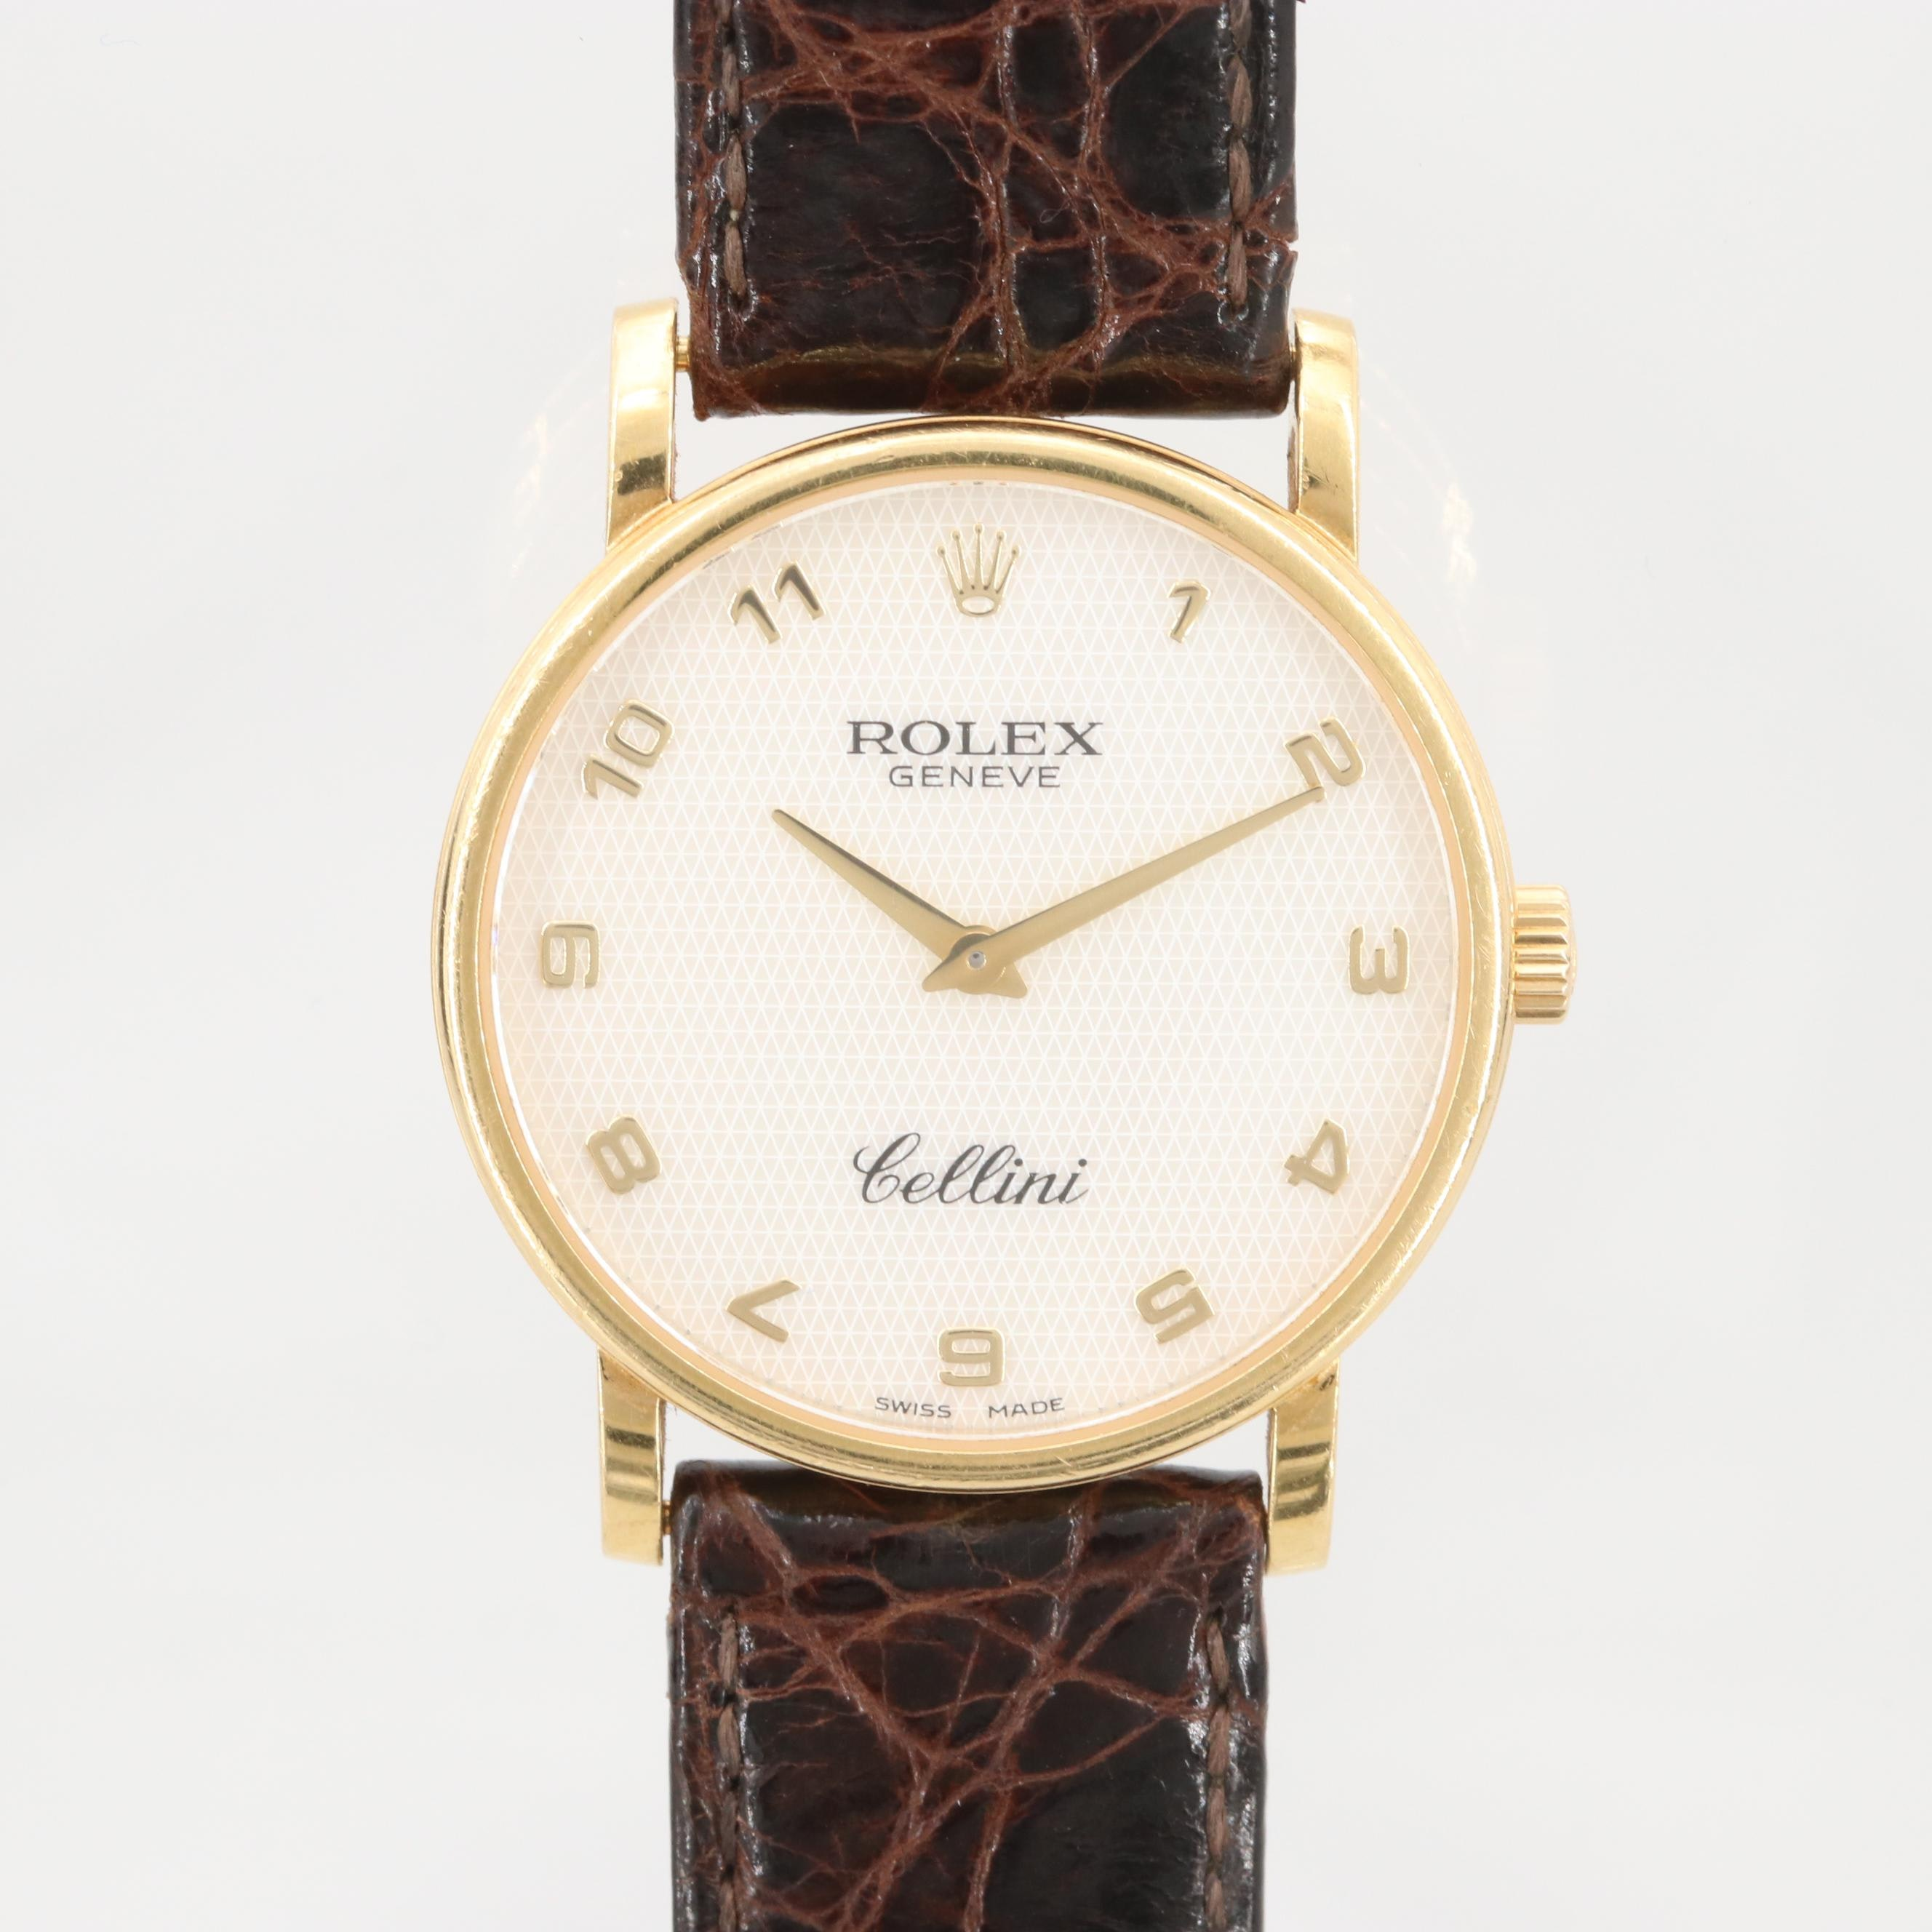 Rolex Cellini 18K Yellow Gold Wristwatch With Mother of Pearl Dial